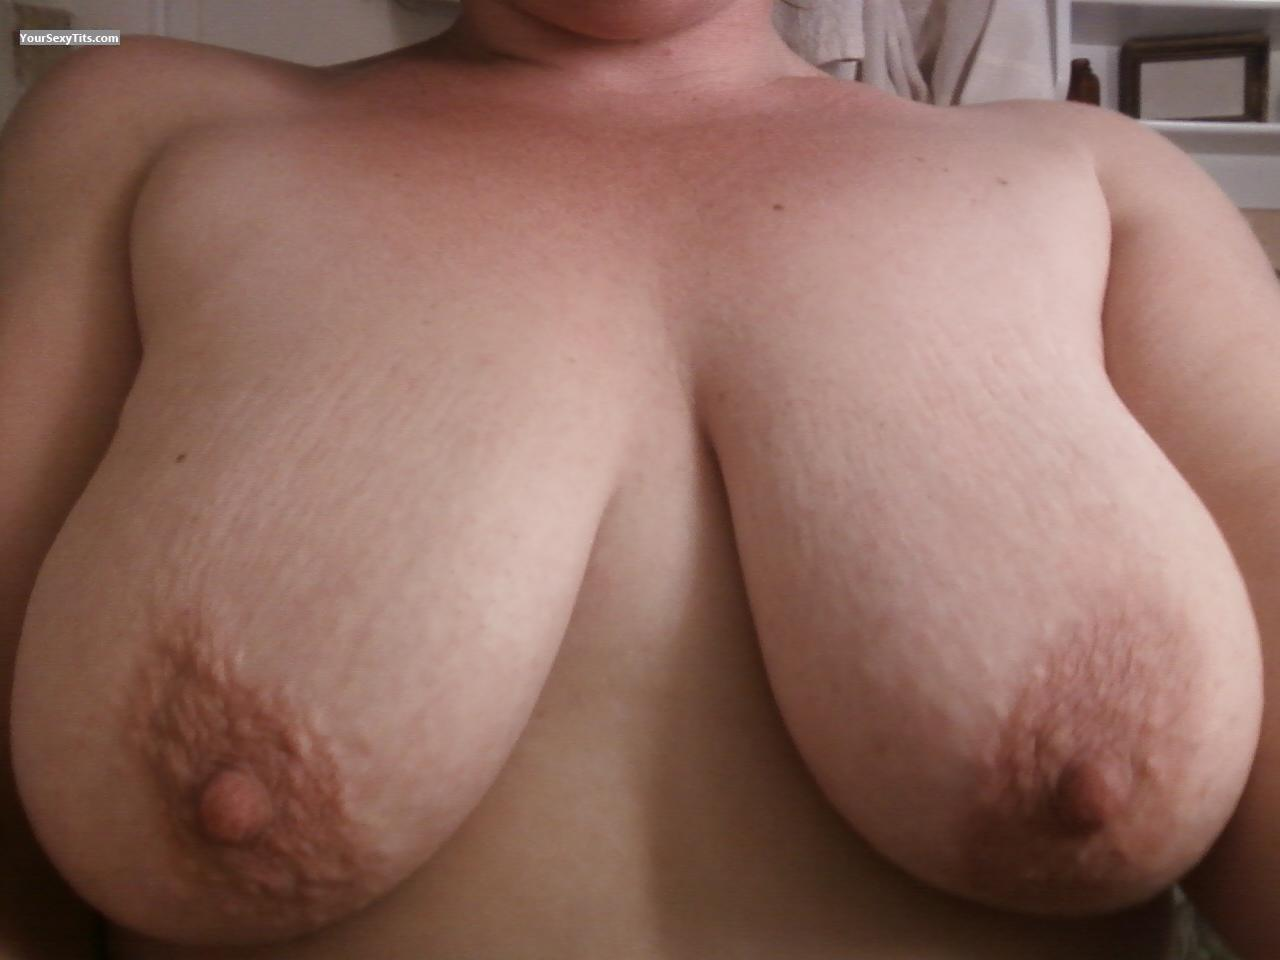 Tit Flash: My Big Tits - Andrea from United States